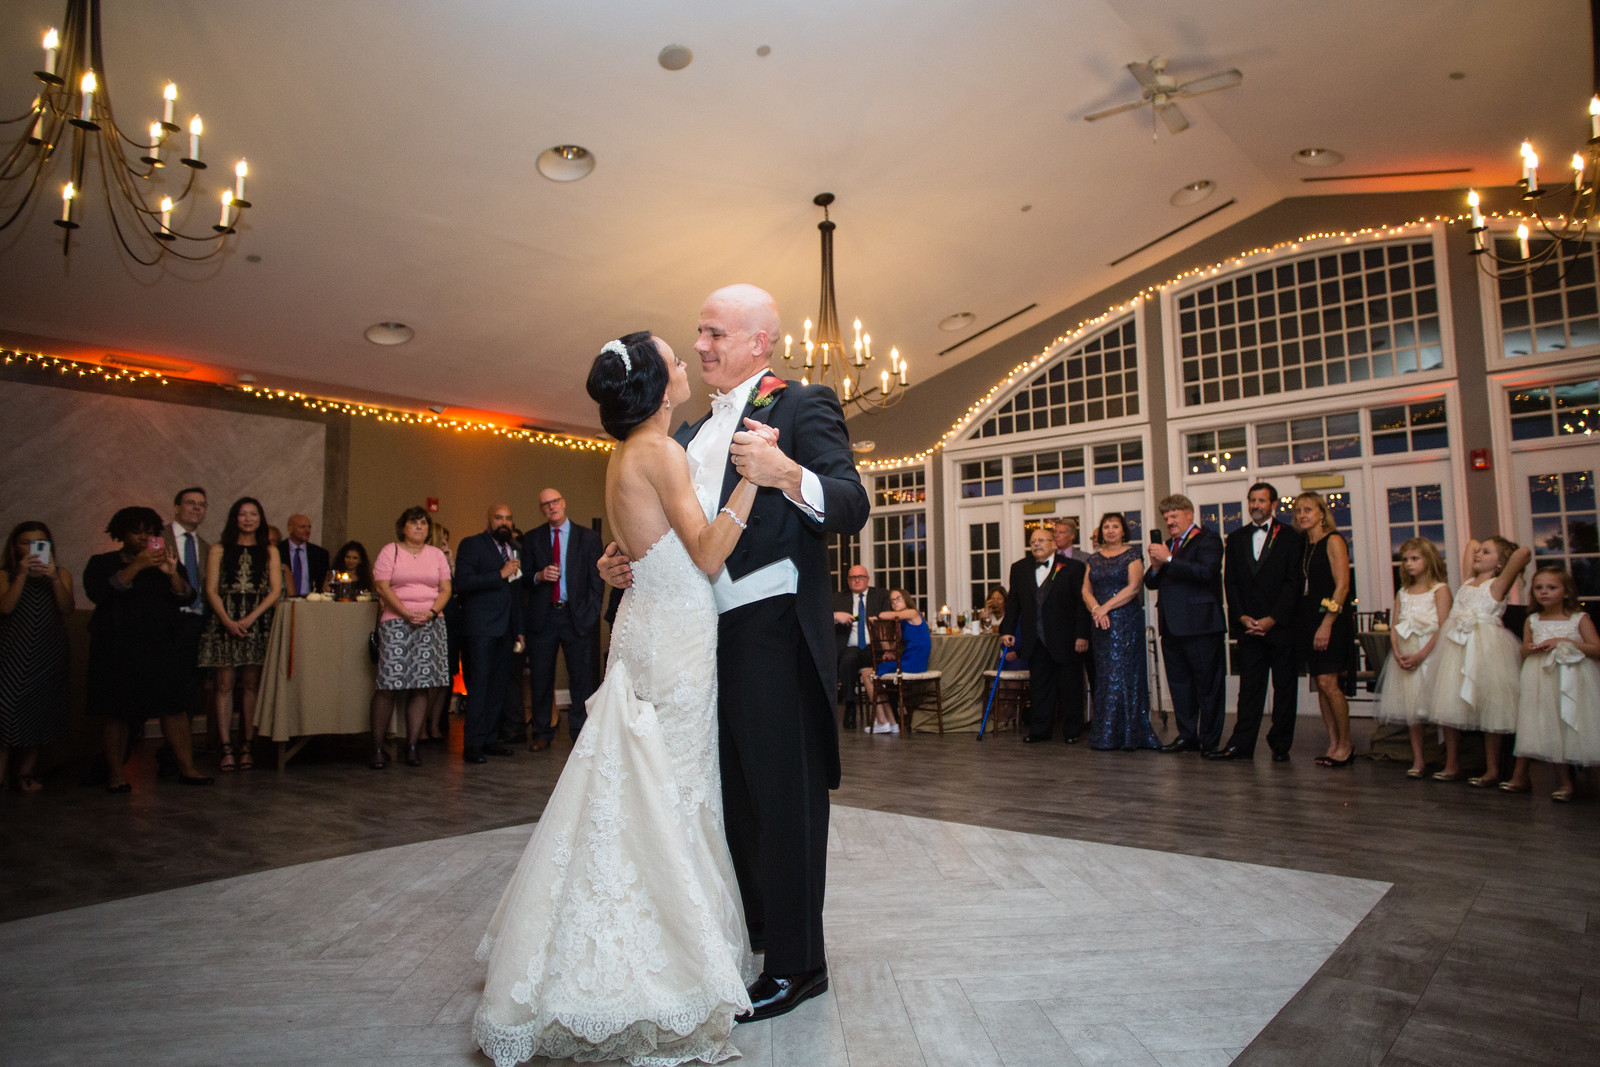 bride and groom first dance at weddings by perfect planning events